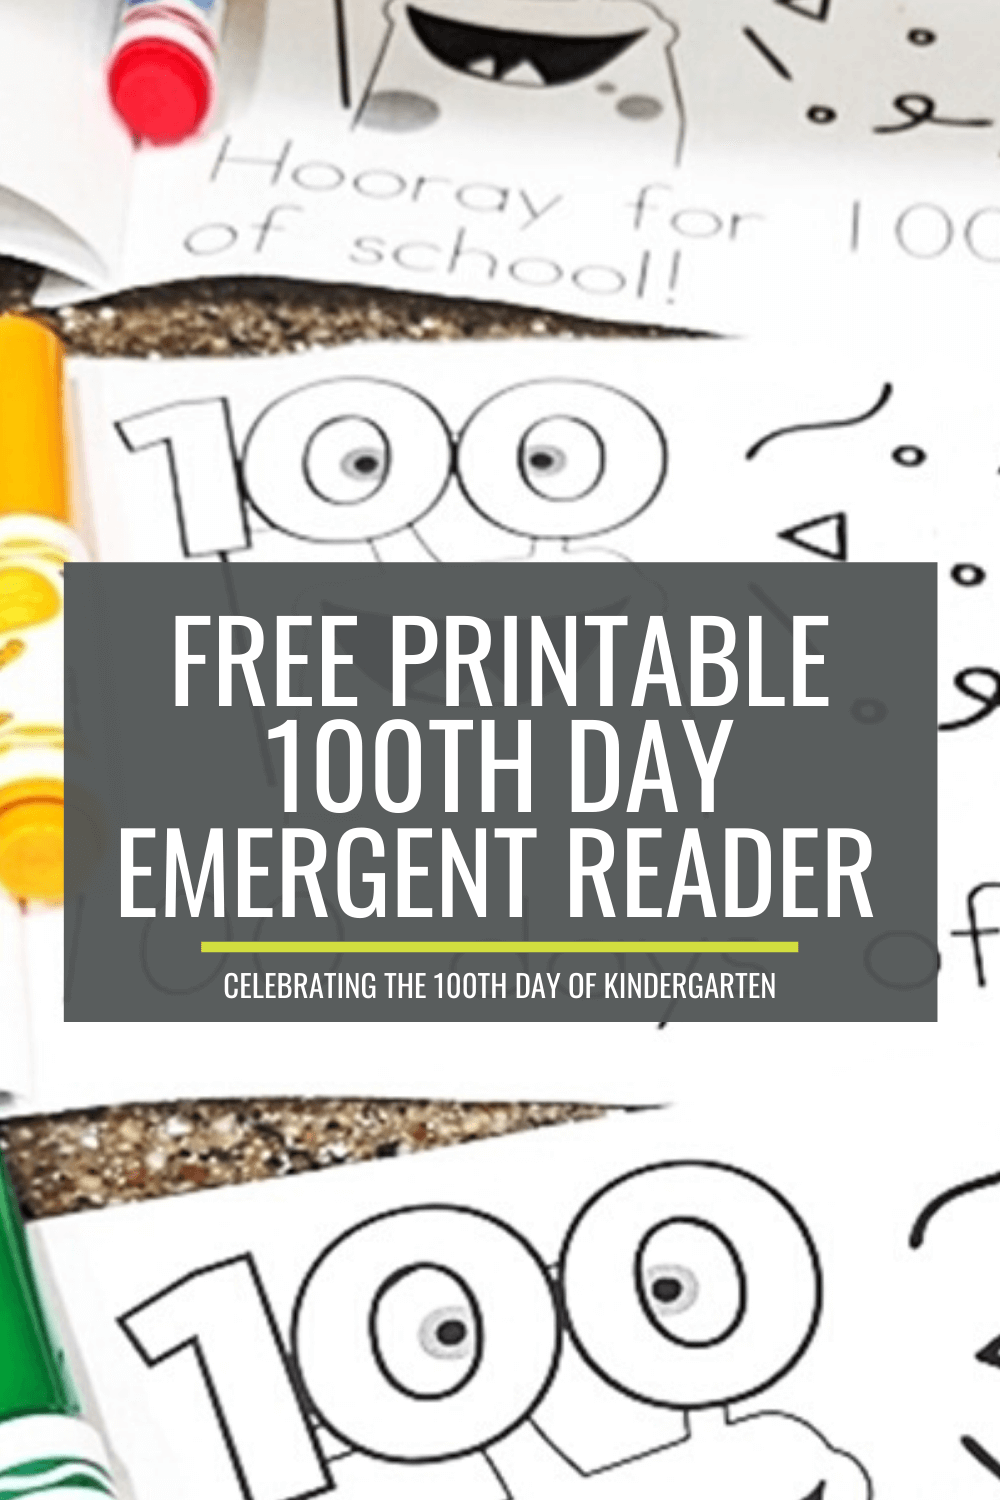 Kinder-Friendly Emergent Readers for the 100th Day of School